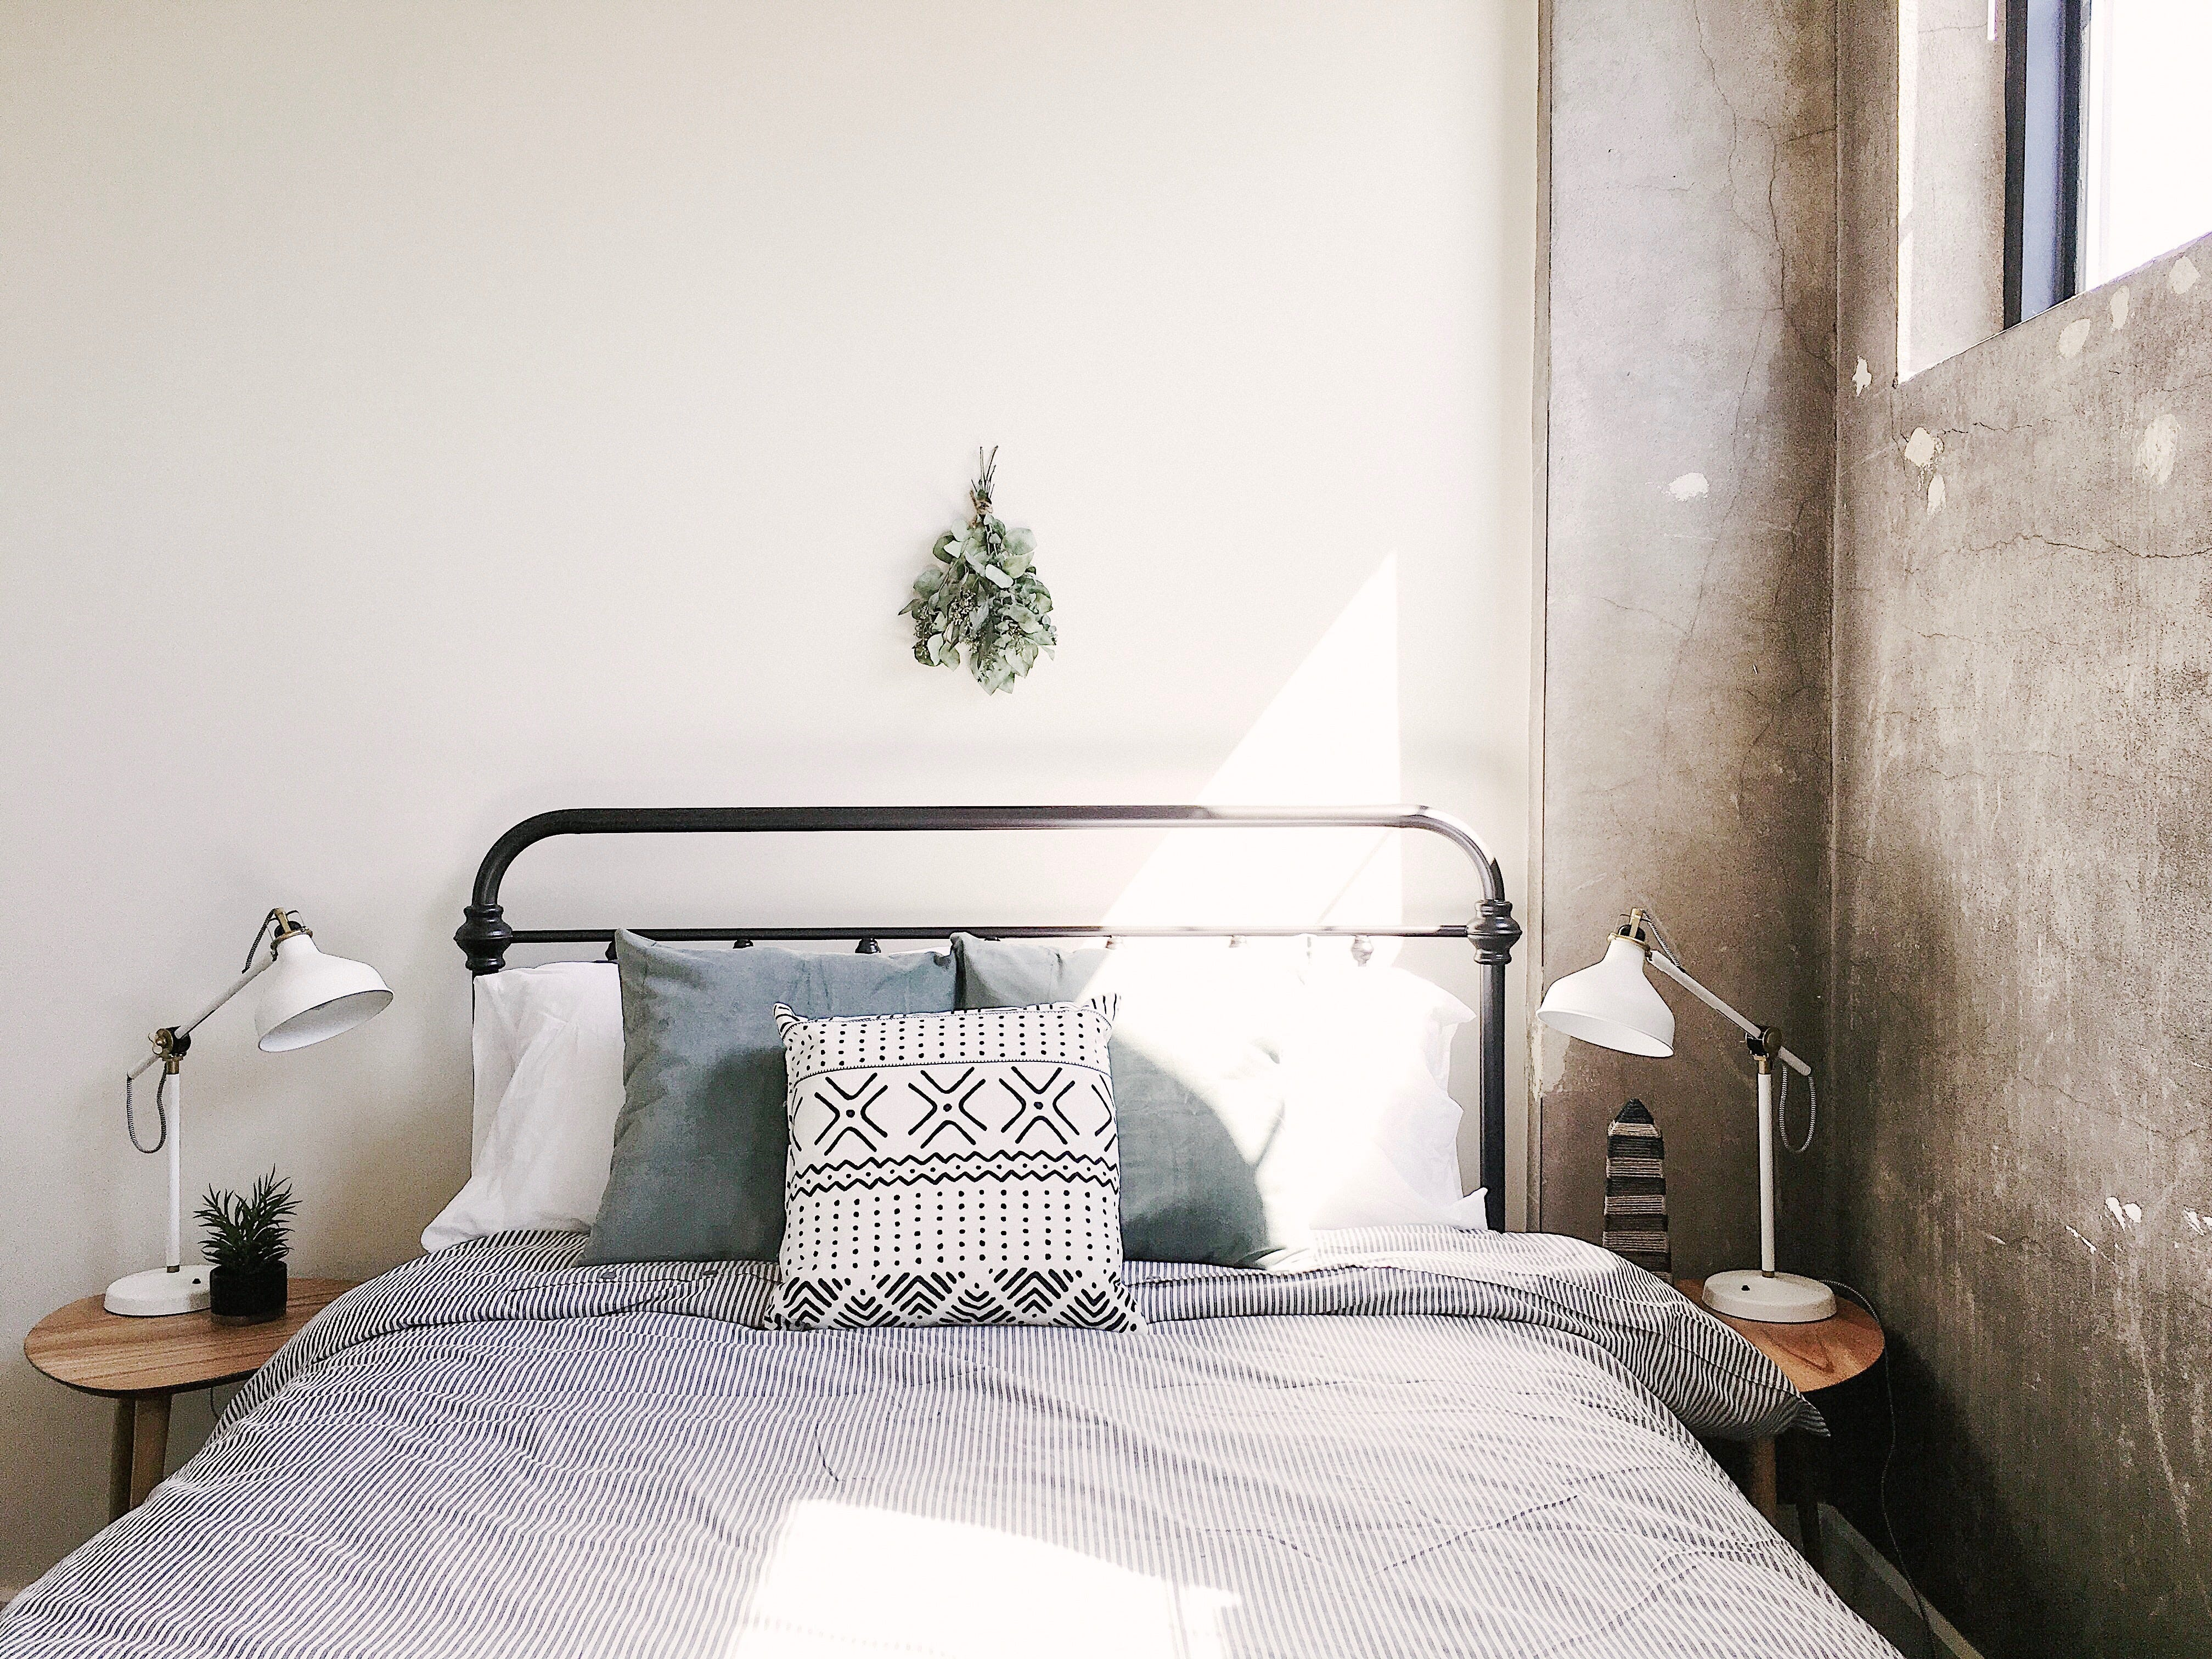 A South Gay Street loft for rent on Airbnb. It is managed by Knox Staytion, a short-term rental company owned by Dylan and Suzanne Robinson.